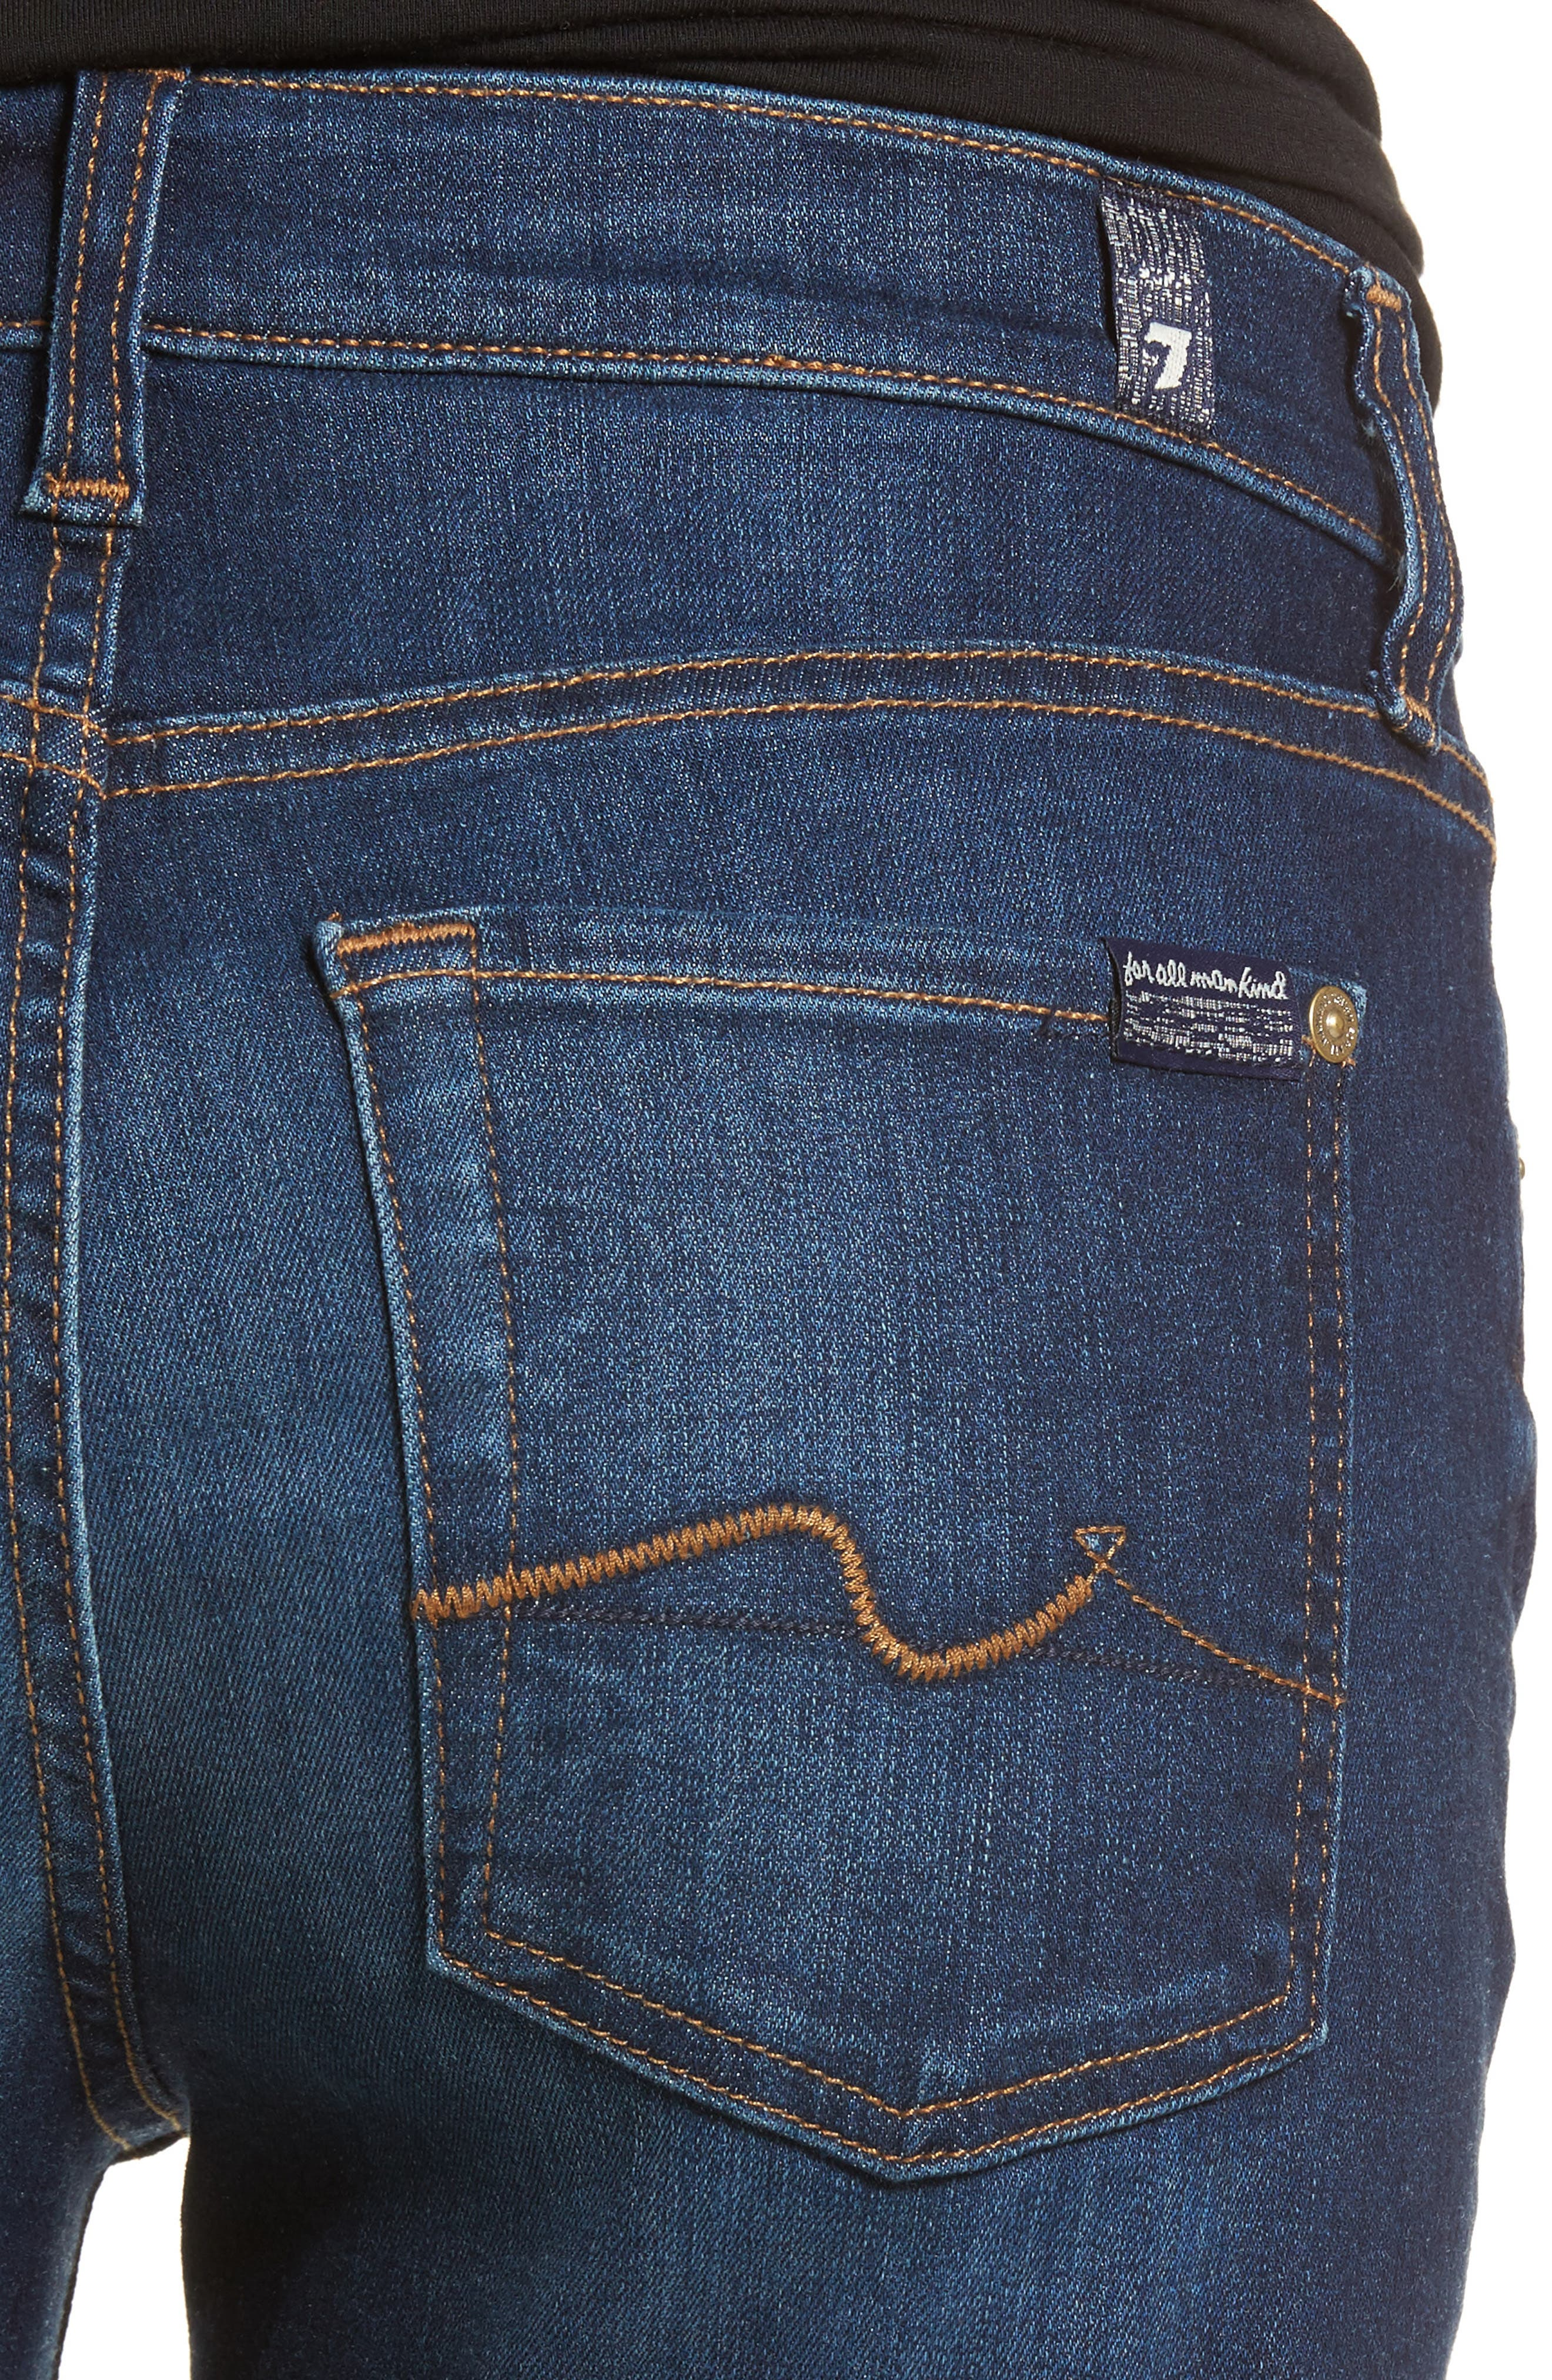 7 FOR ALL MANKIND<SUP>®</SUP>, b(air) Tailorless Iconic Bootcut Jeans, Alternate thumbnail 5, color, MORENO